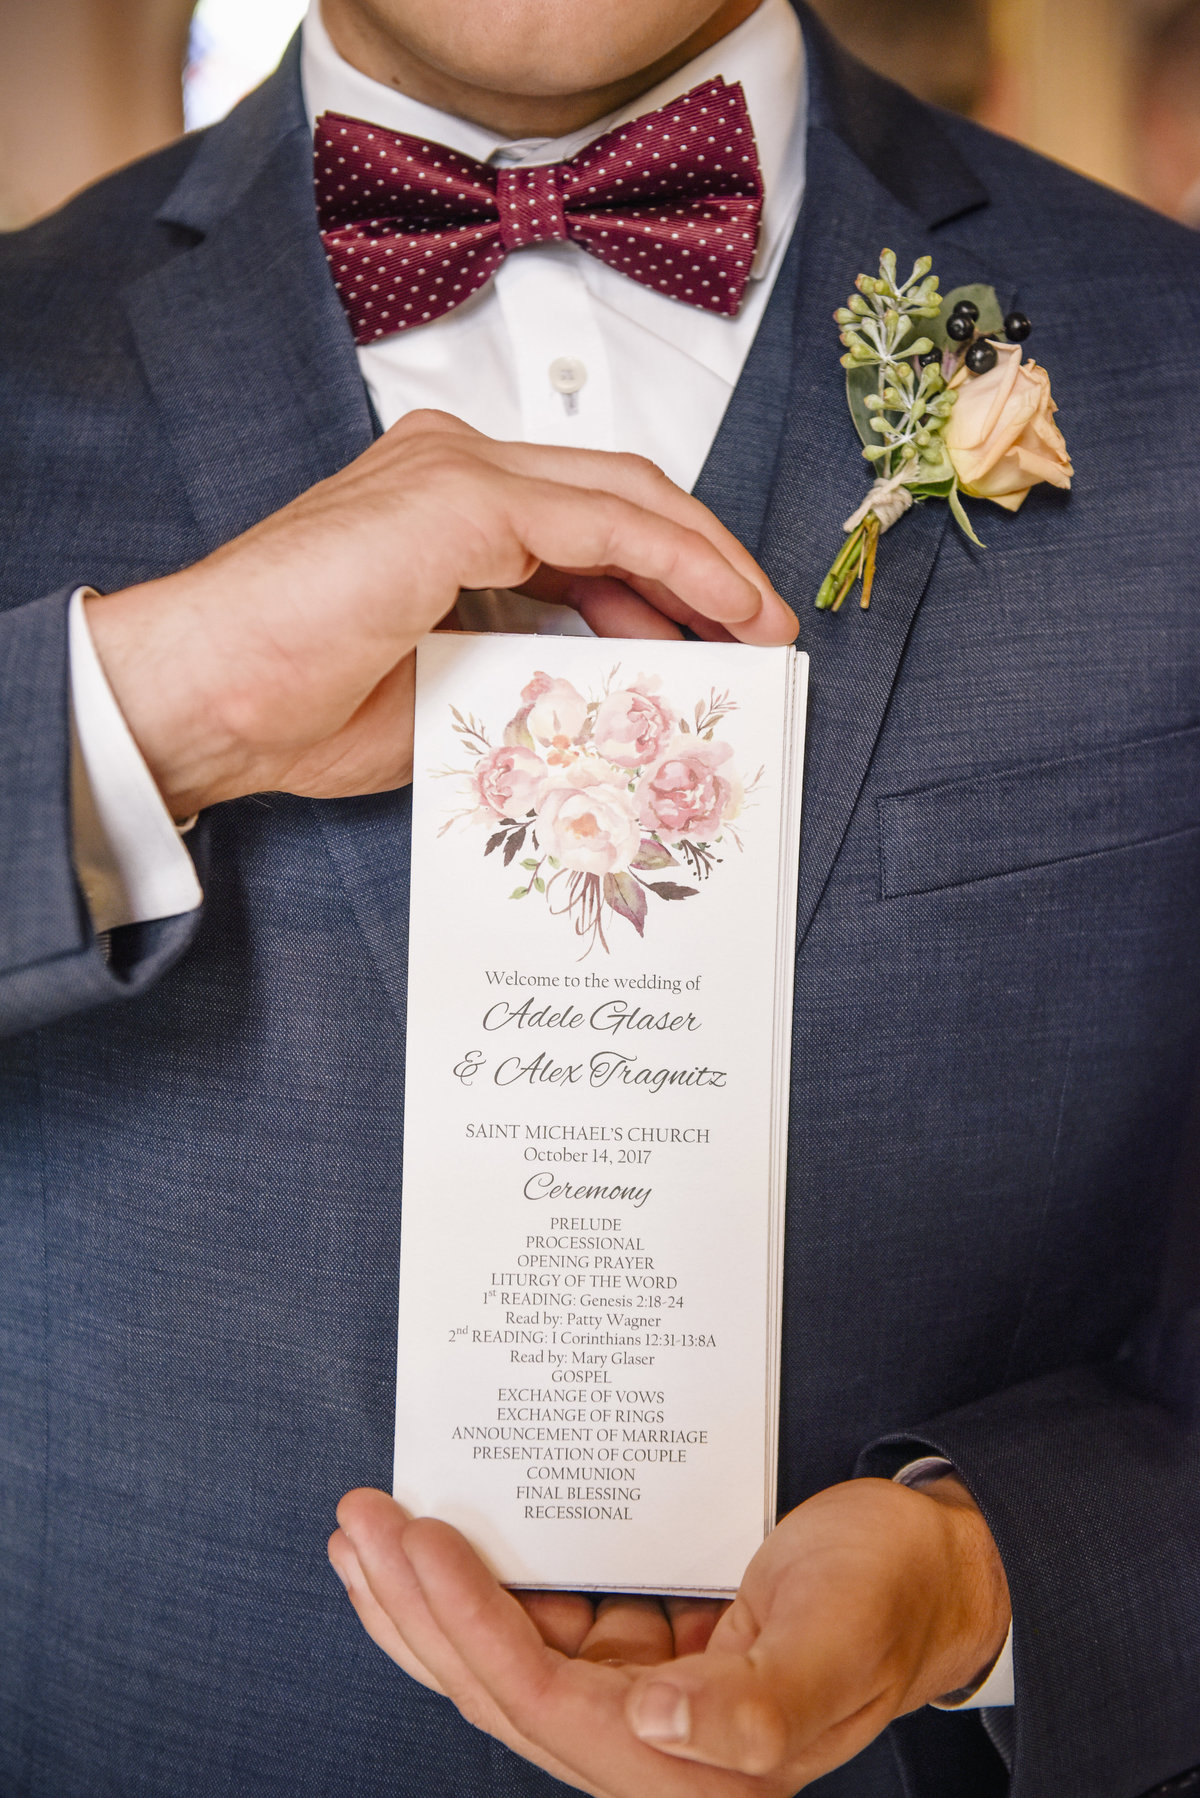 groomsman holding program for wedding ceremony